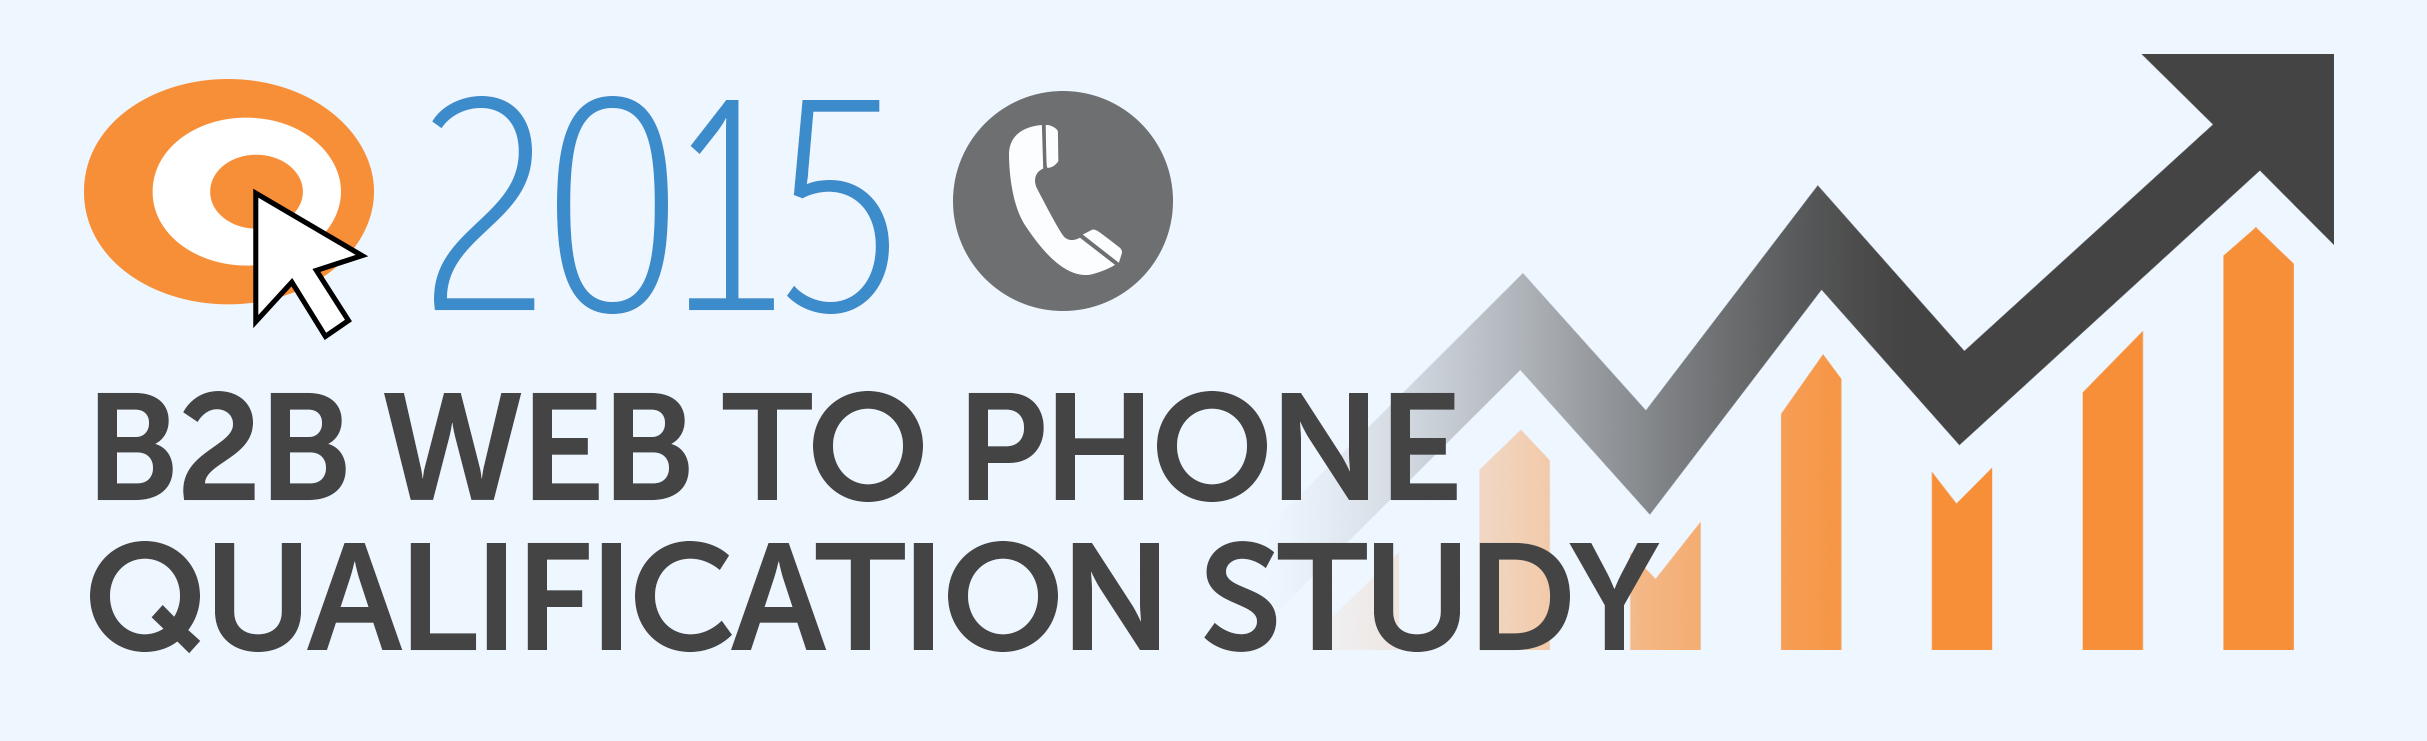 2015 B2B Web to Phone Qualification Study